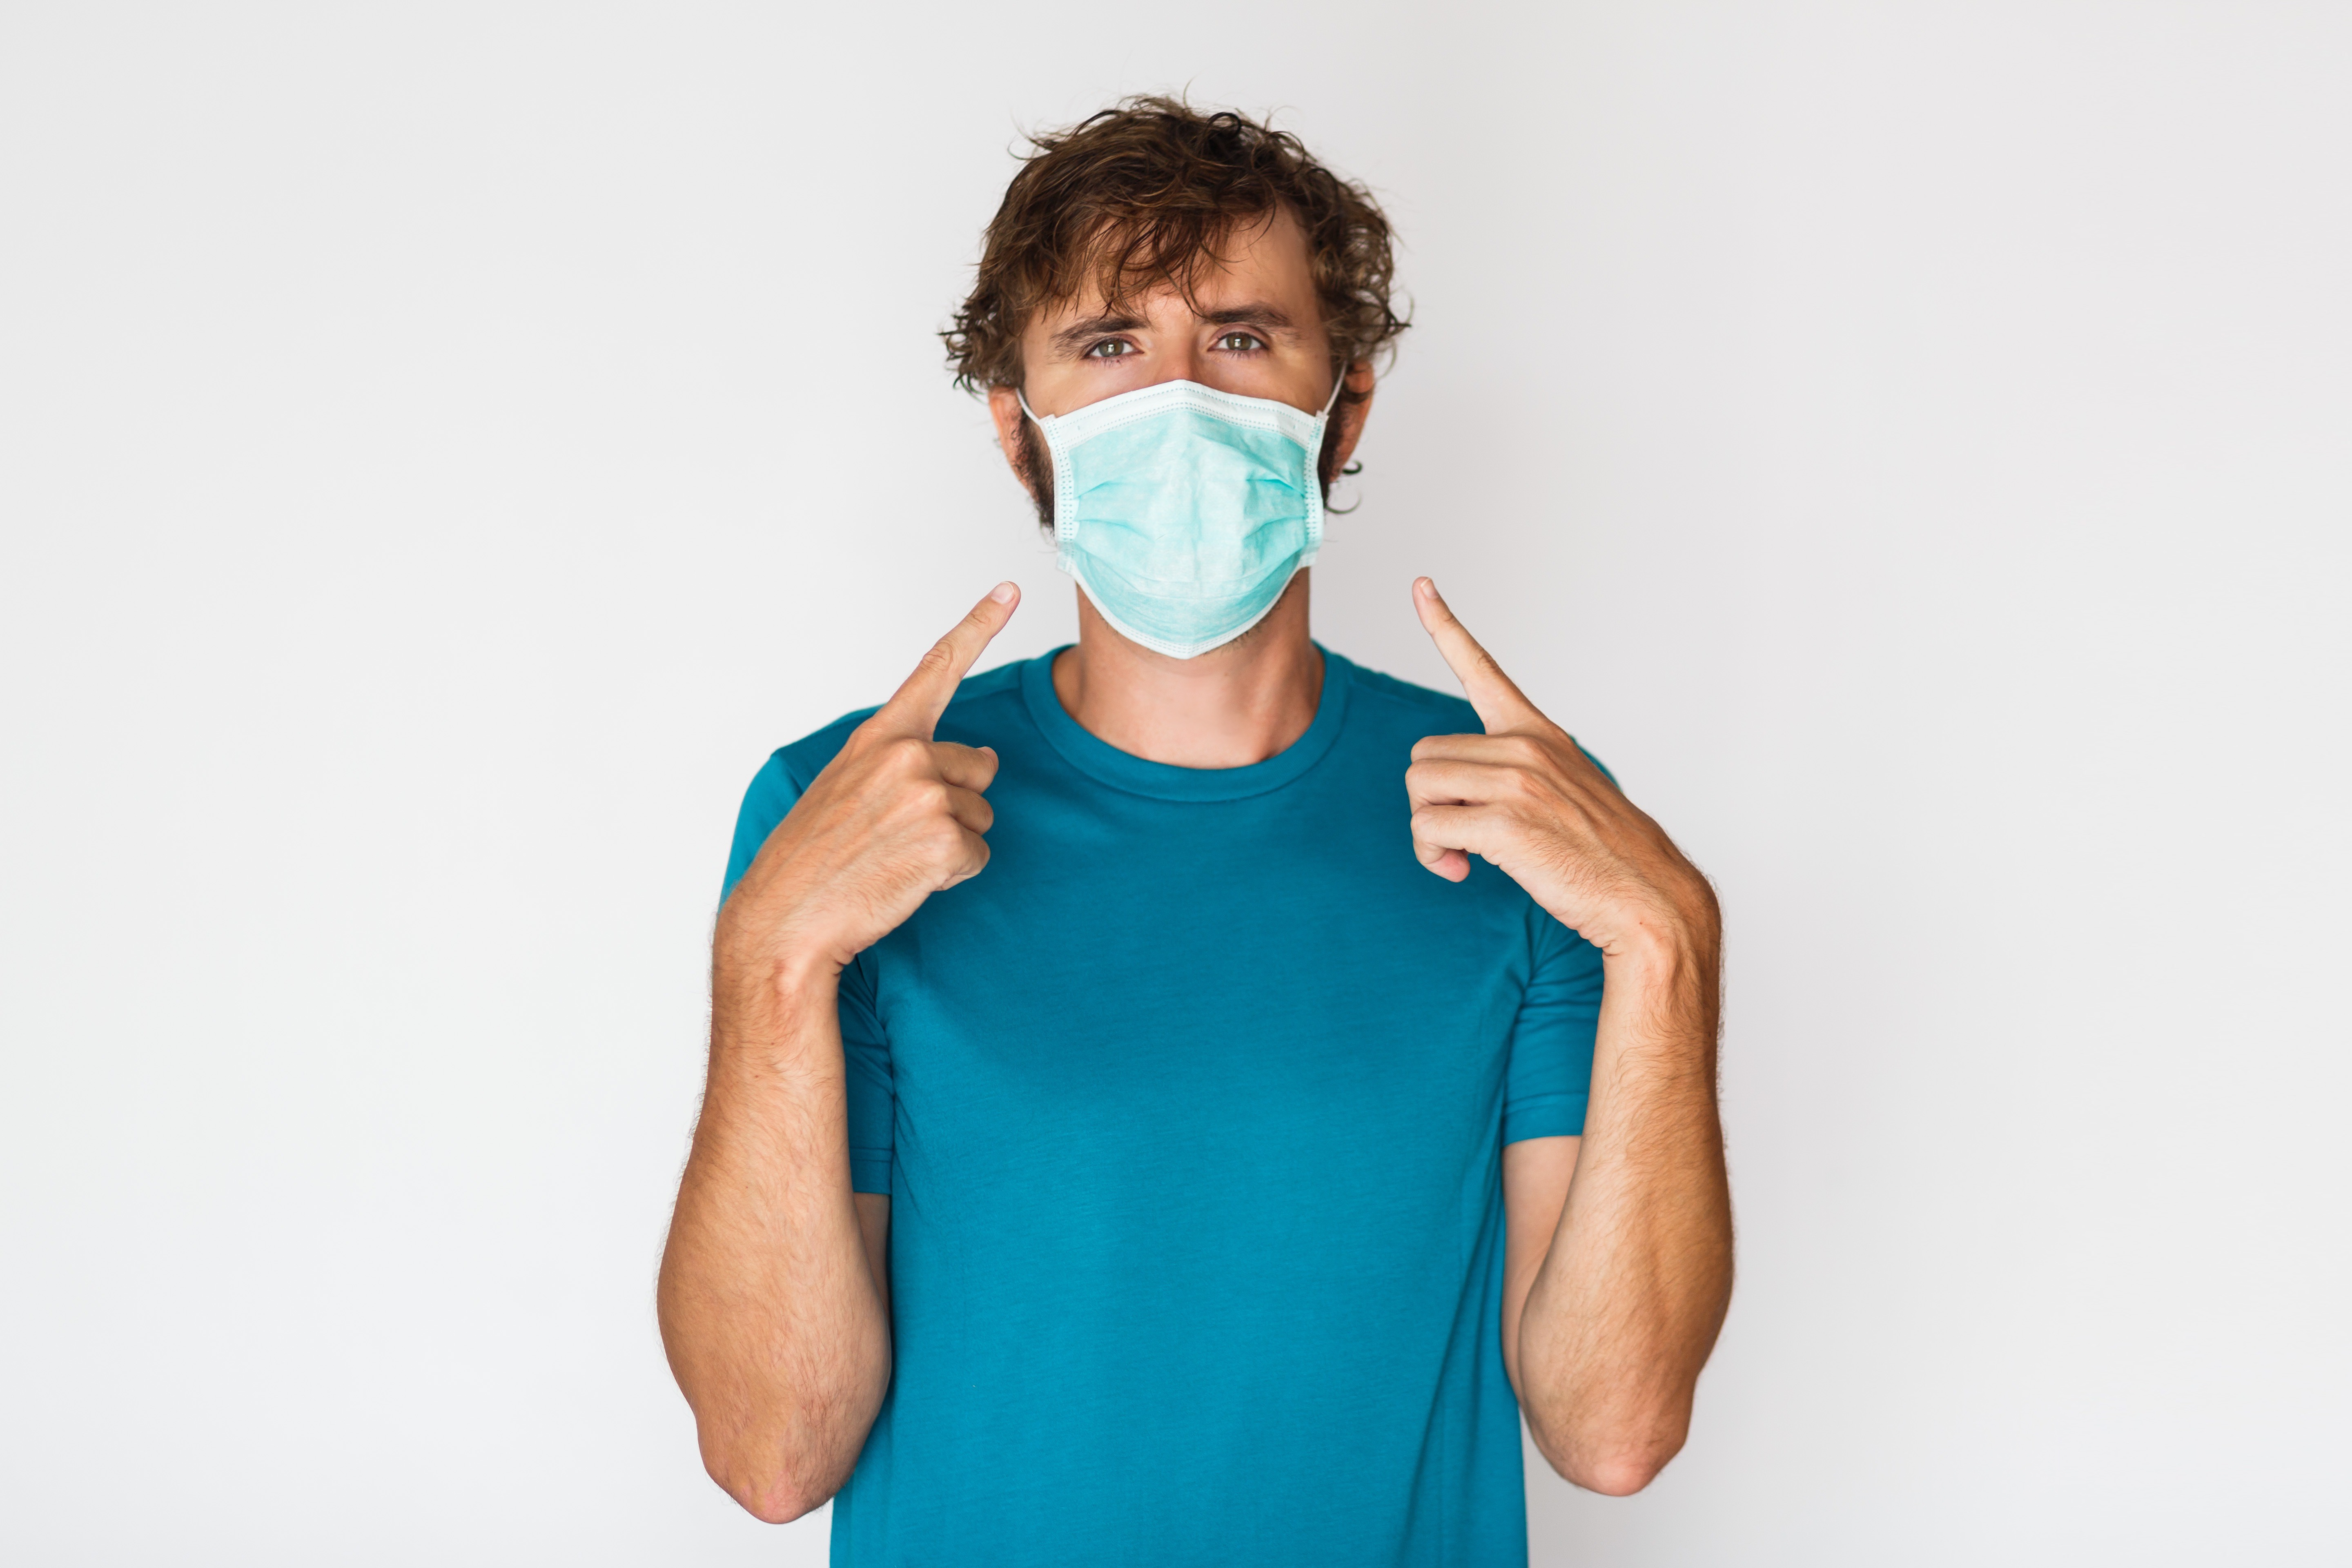 european-man-in-protective-mask-pointing-to-himself